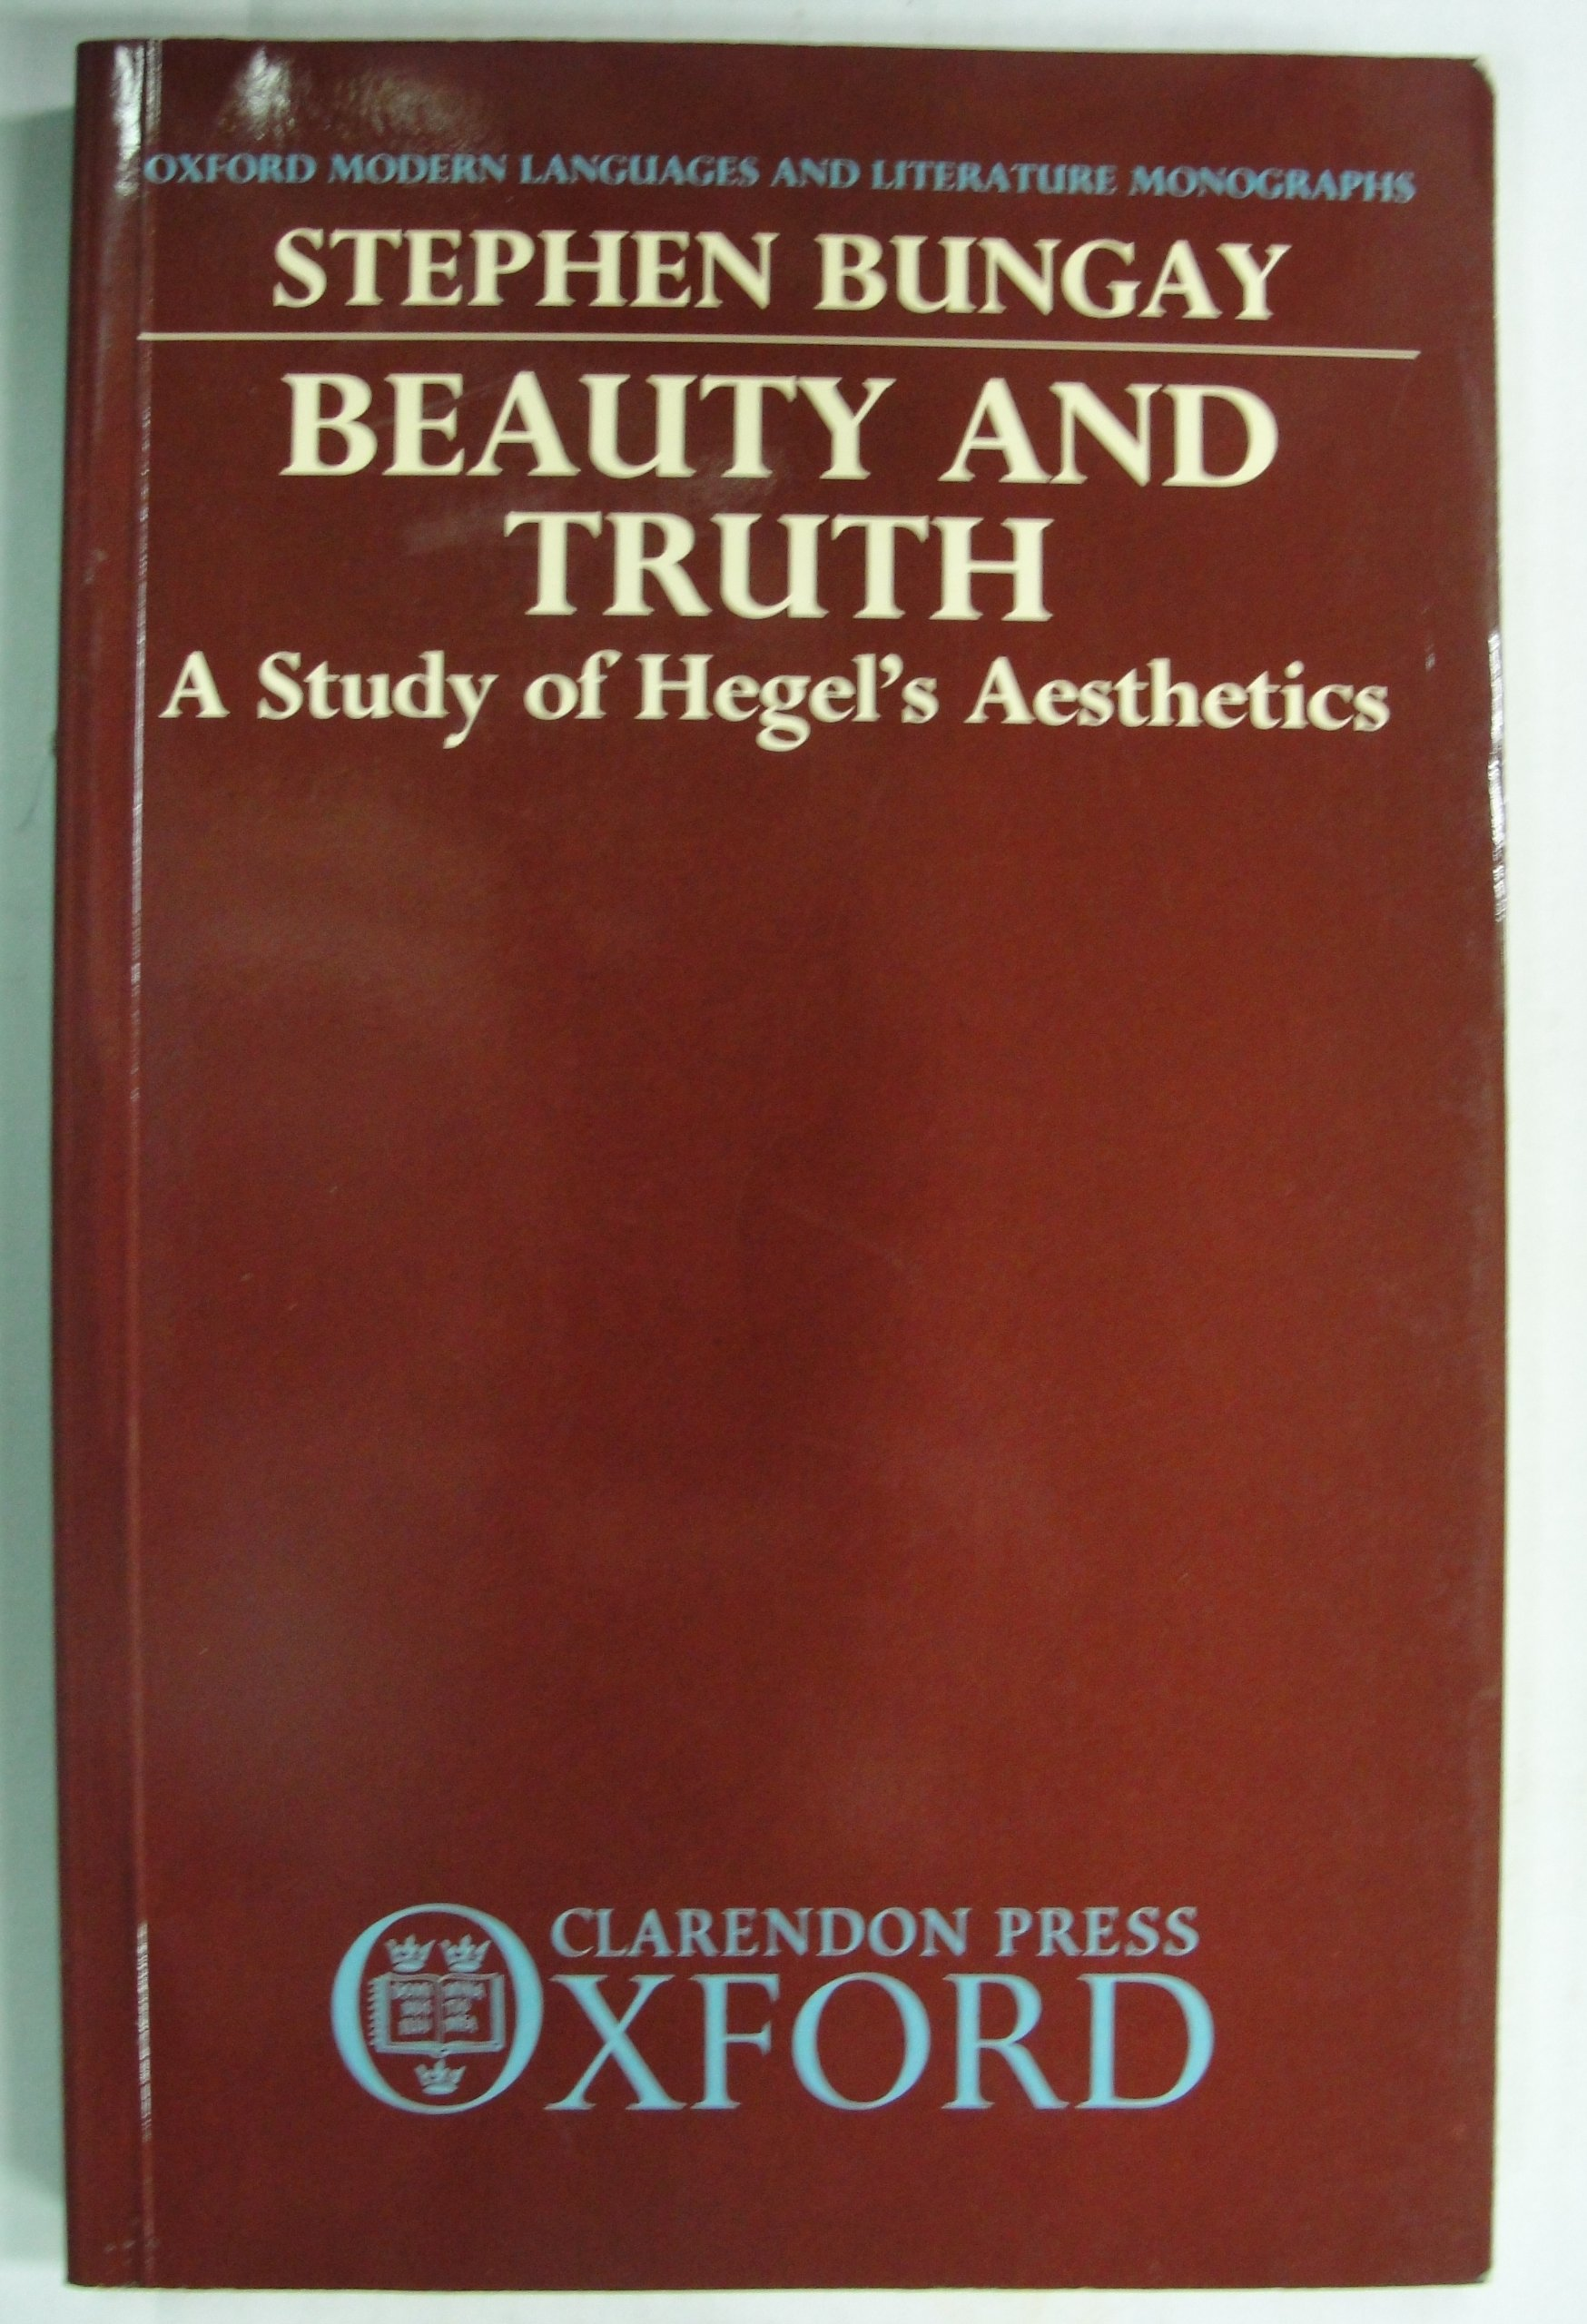 Beauty and Truth: A Study of Hegels Aesthetics (Oxford Modern Languages and Literature Monographs)